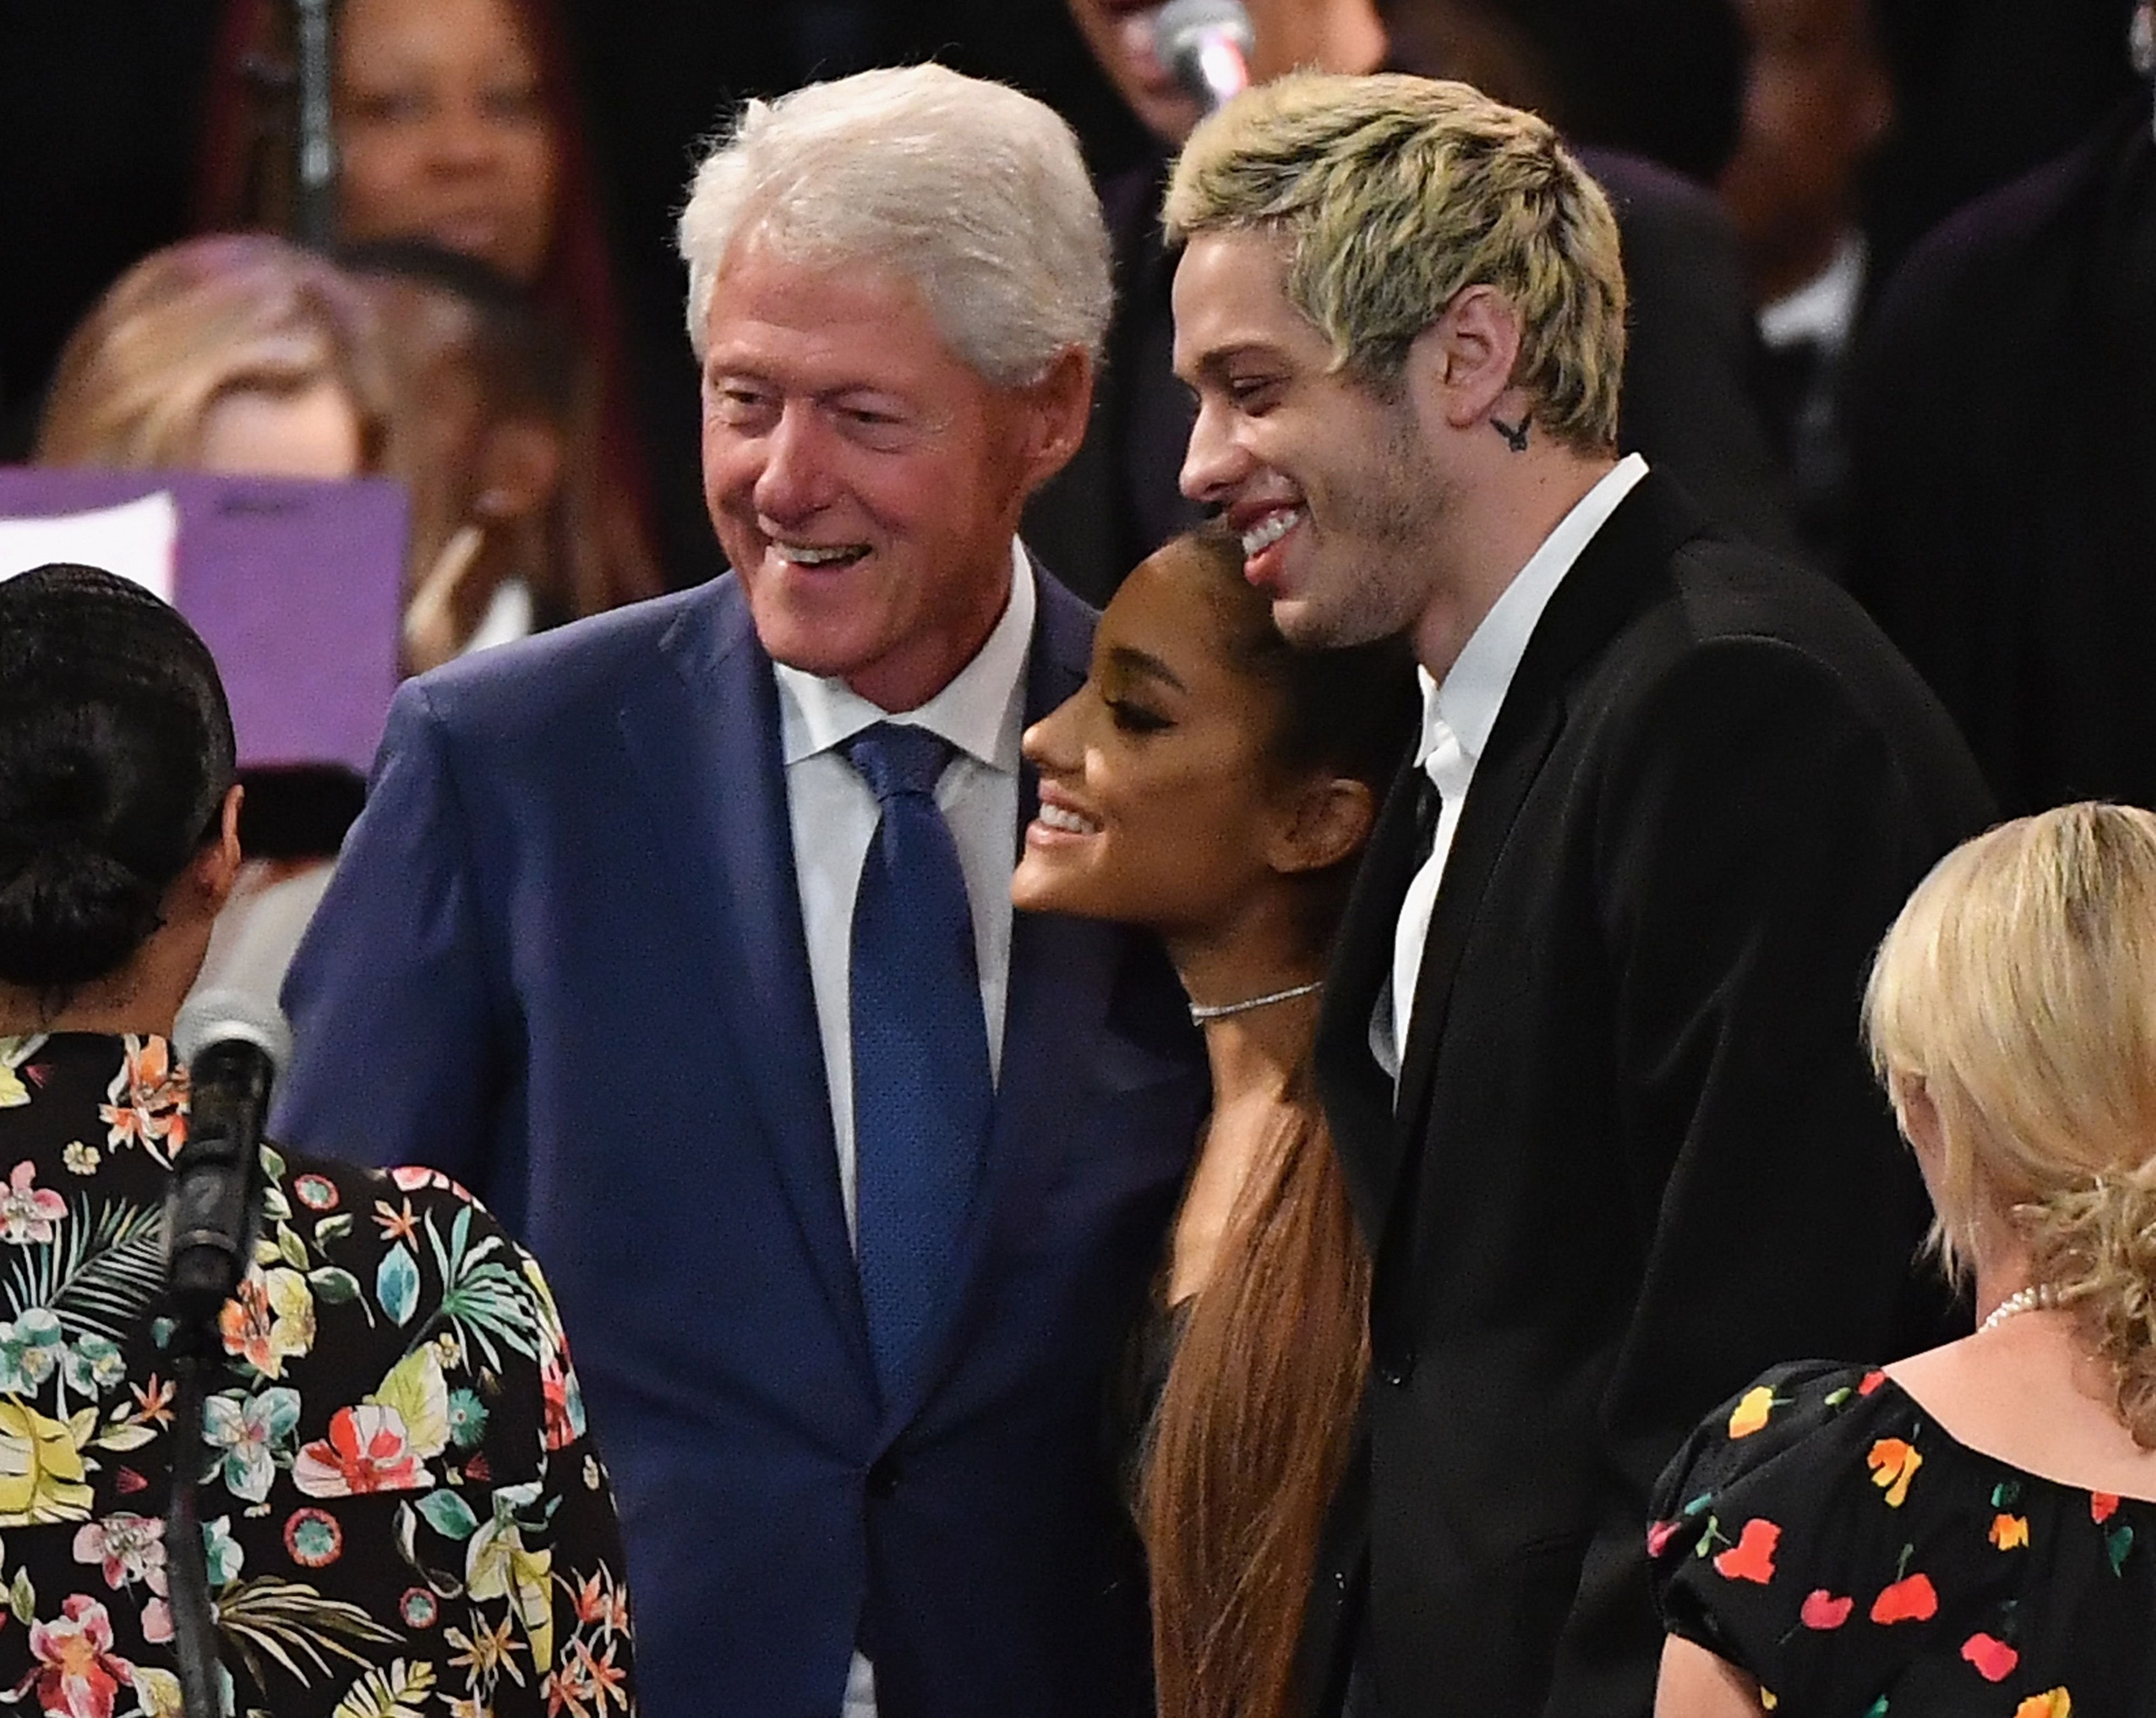 Former US President Bill Clinton takes a picture with singer Ariana Grande and her fiancee Pete Davidson at Aretha Franklin's funeral at Greater Grace Temple on August 31, 2018 in Detroit, Michigan.